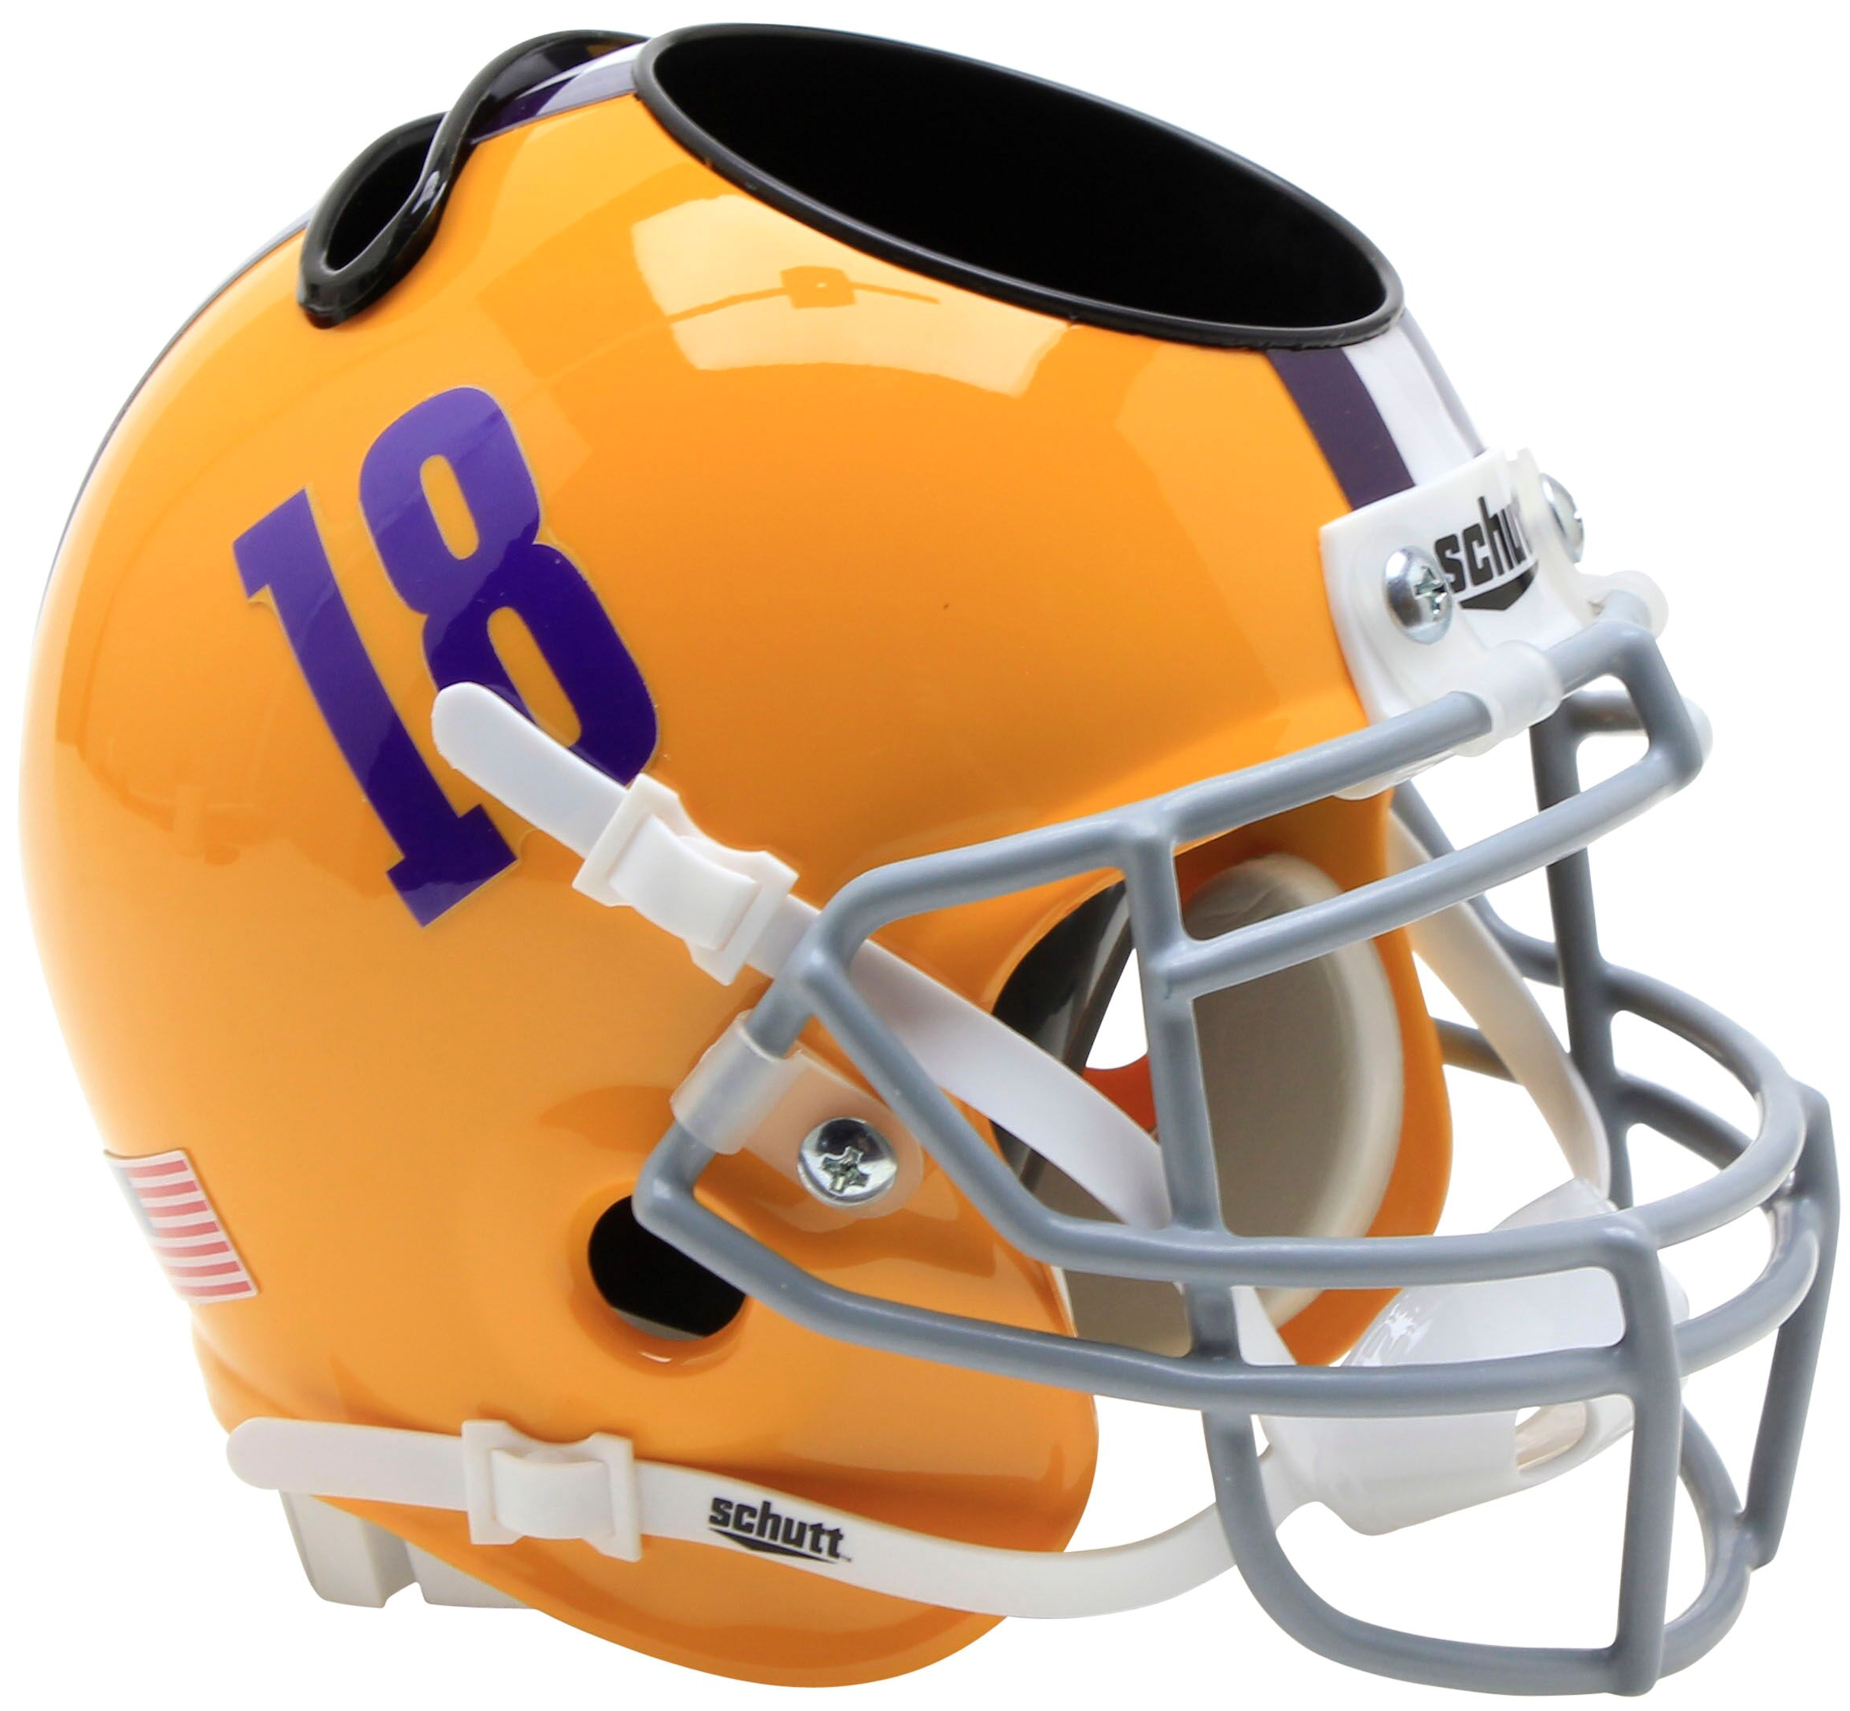 LSU Tigers Miniature Football Helmet Desk Caddy <B>18</B>